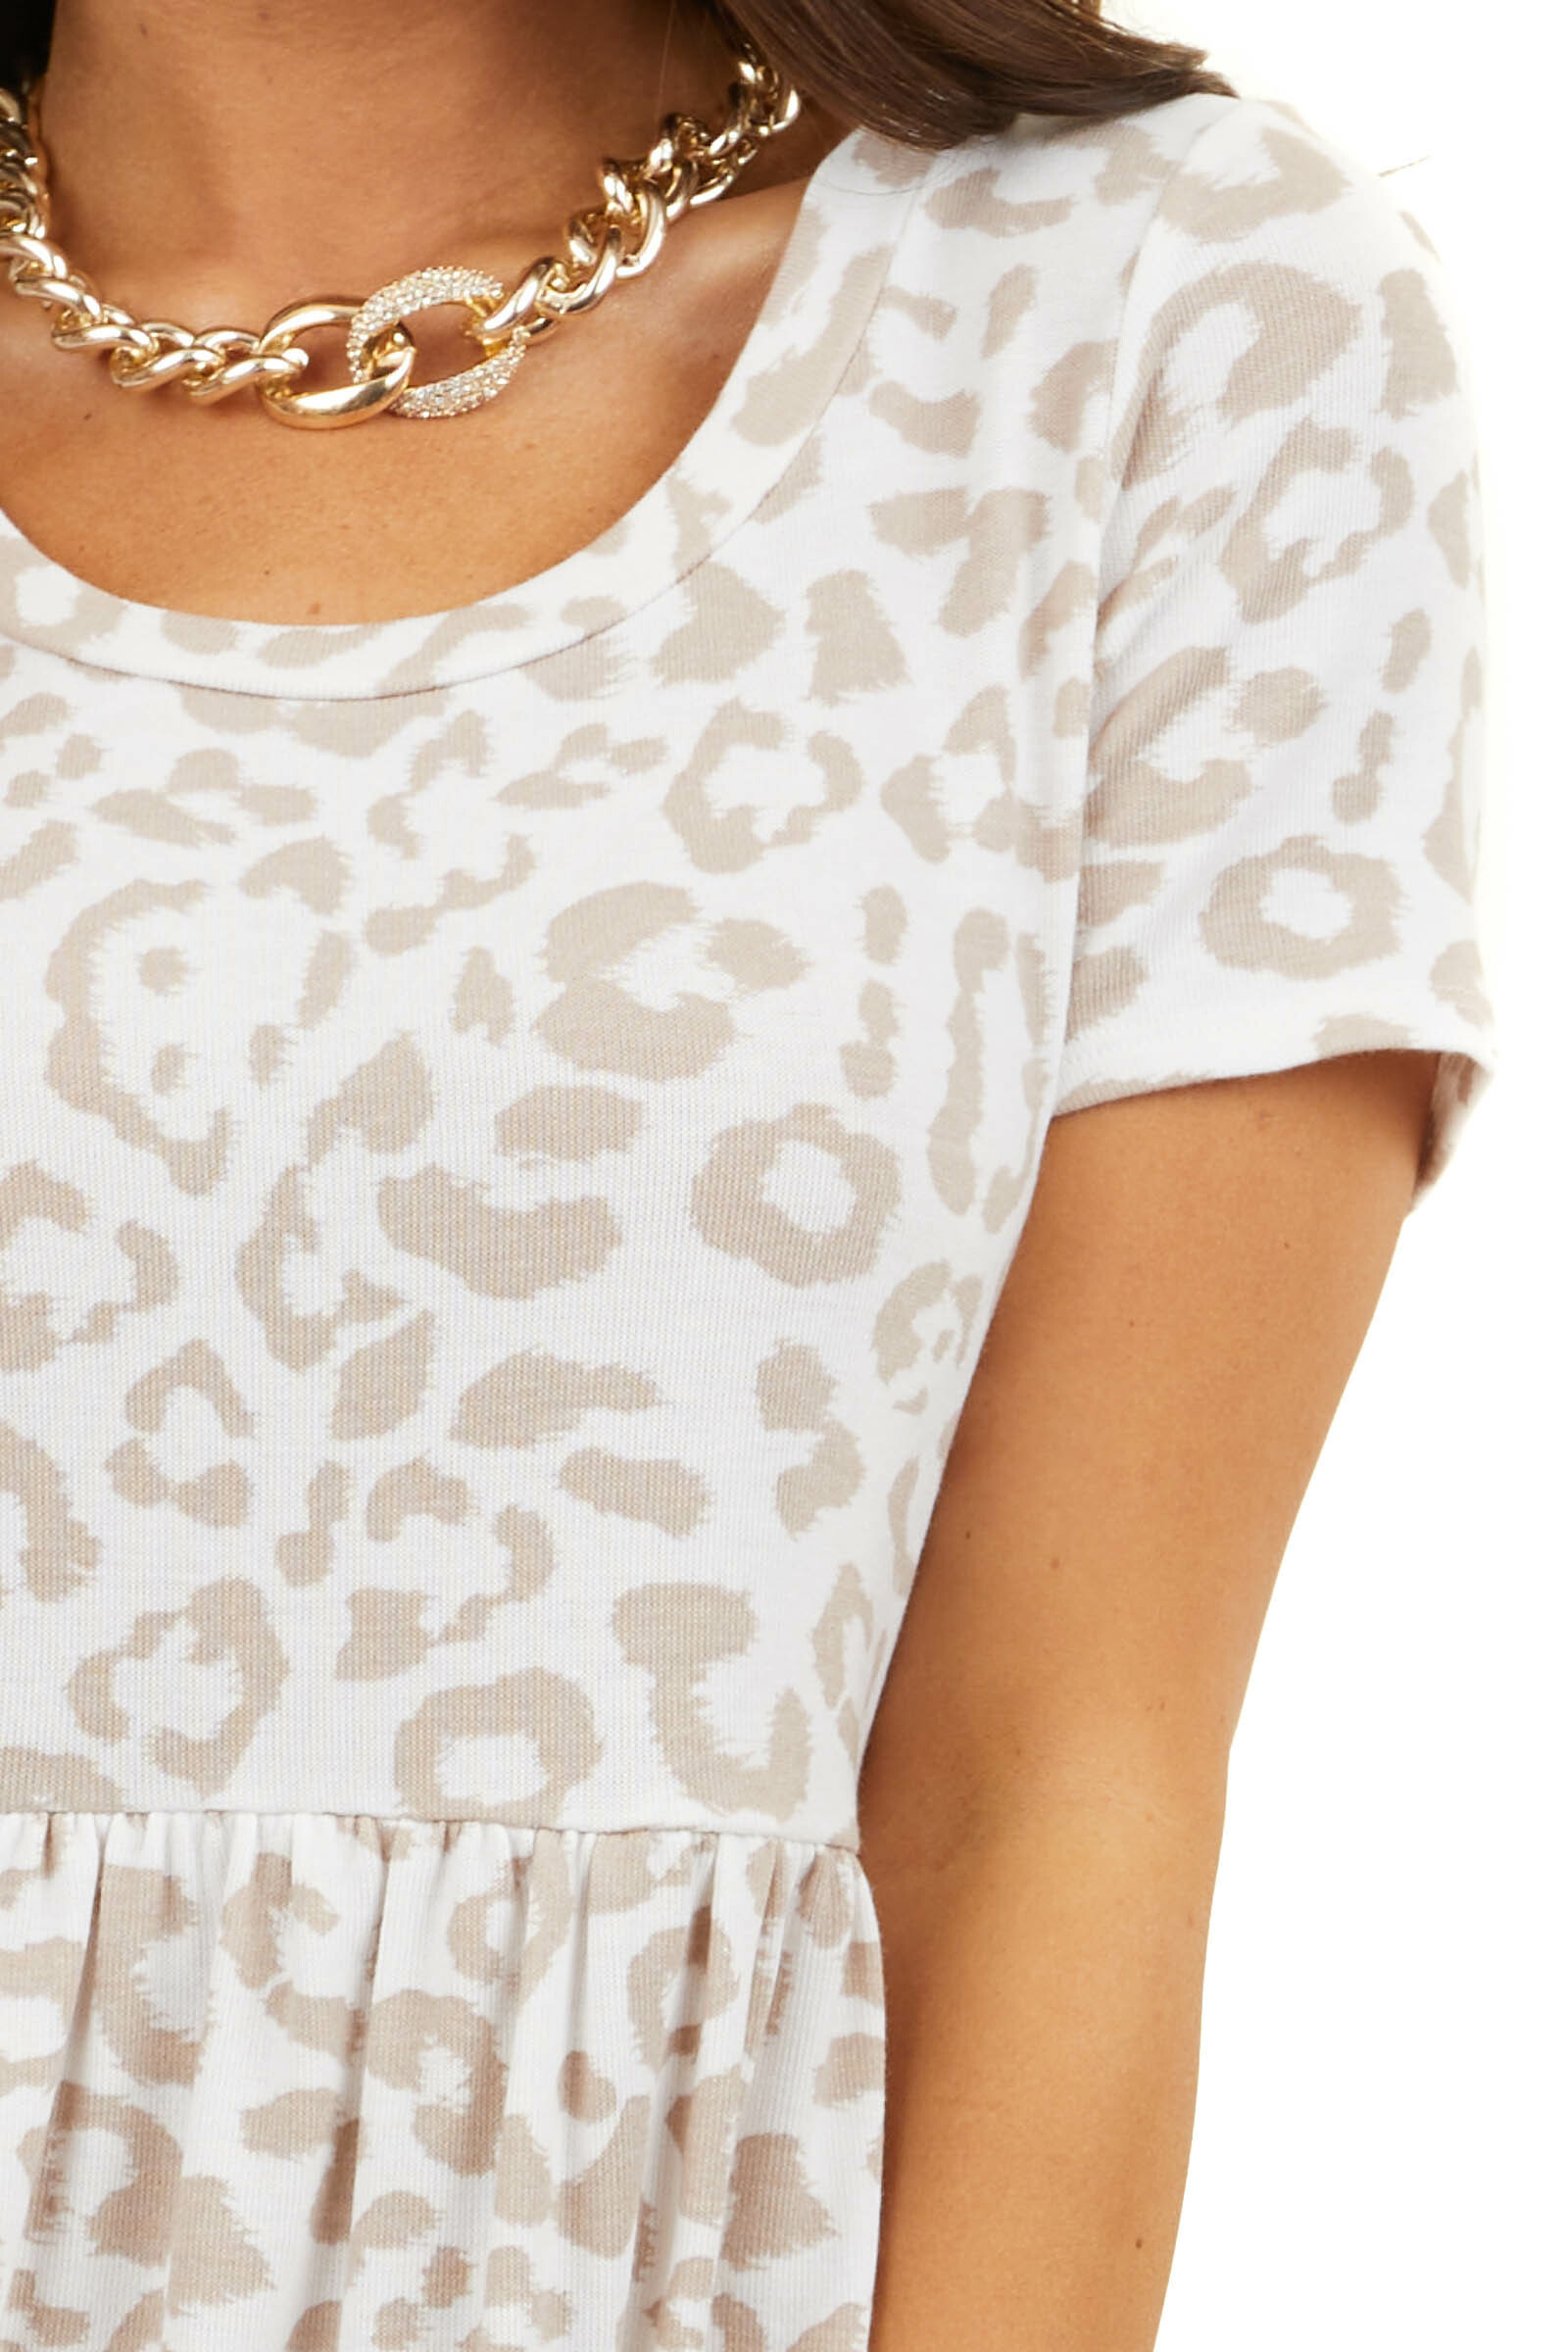 Ivory Leopard Print Babydoll Knit Dress with Short Sleeves